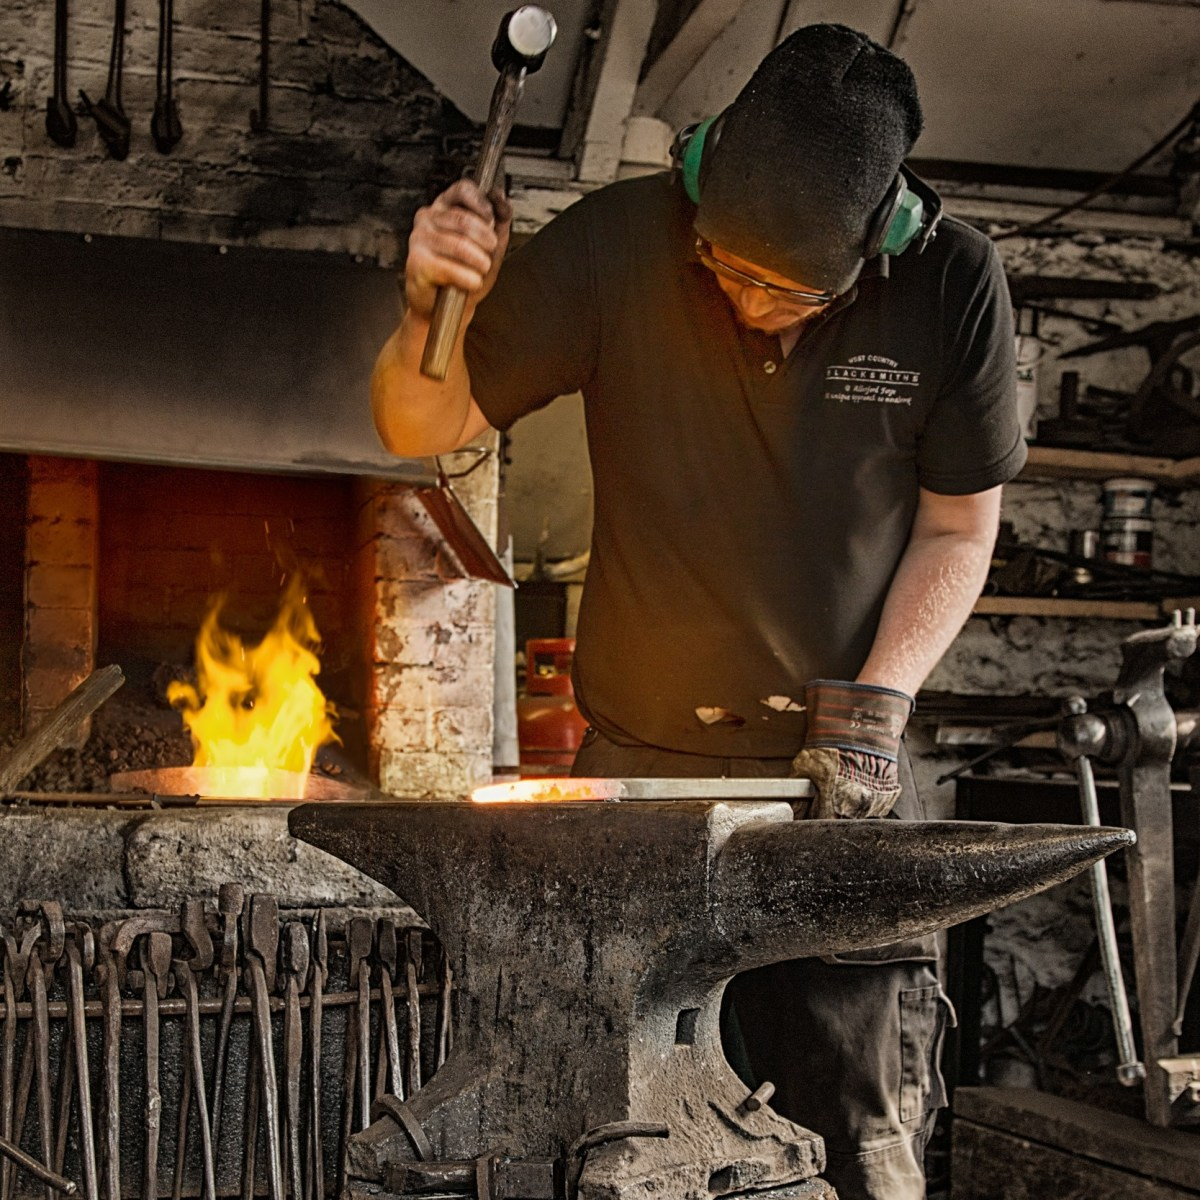 Blacksmith Forging at West Country Blacksmiths